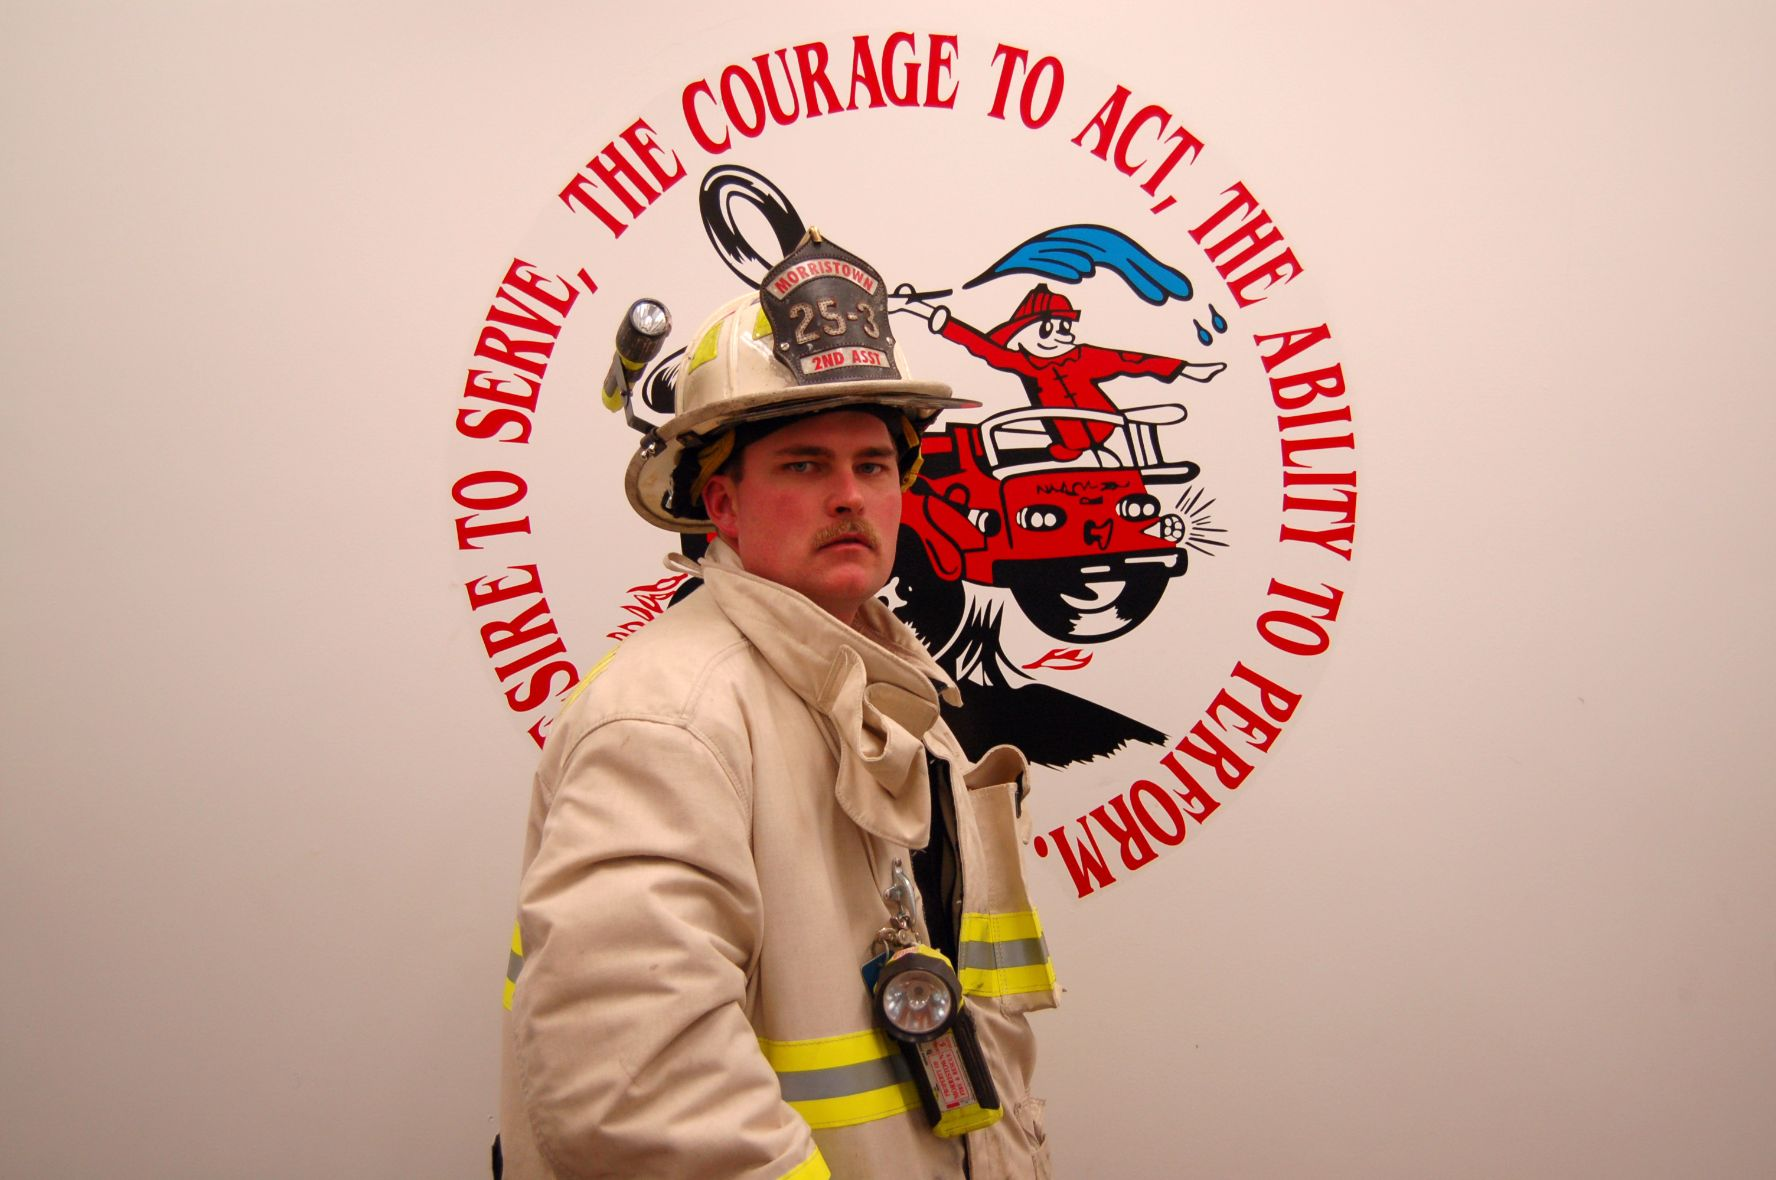 2nd Assistant Chief Dean Hoffman